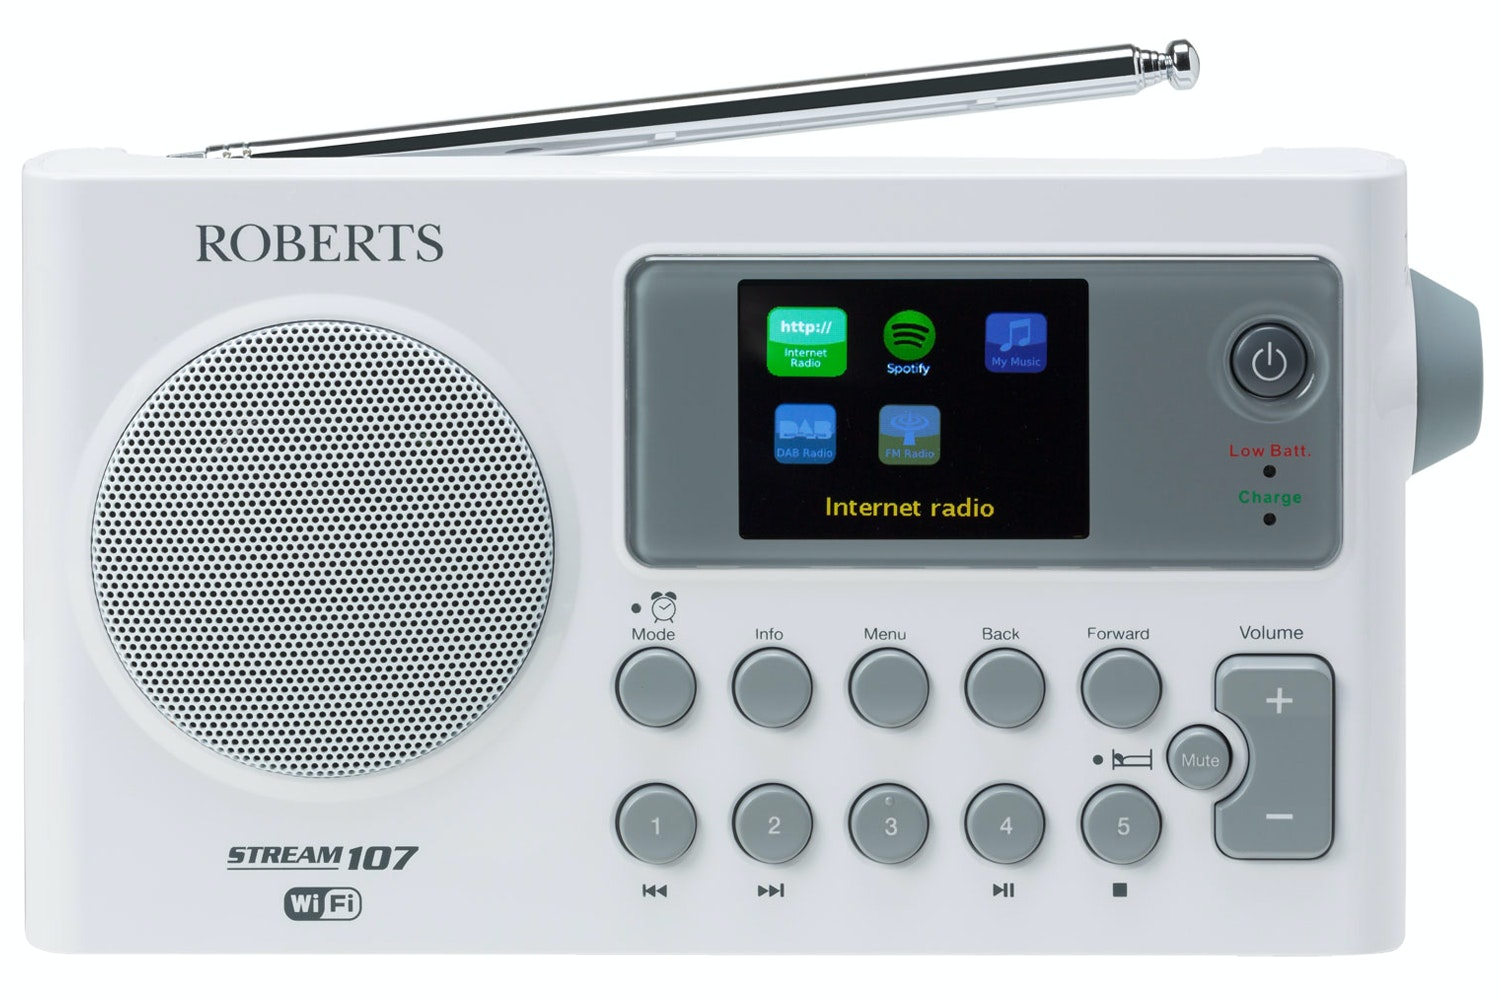 Roberts Internet Radio | Stream107